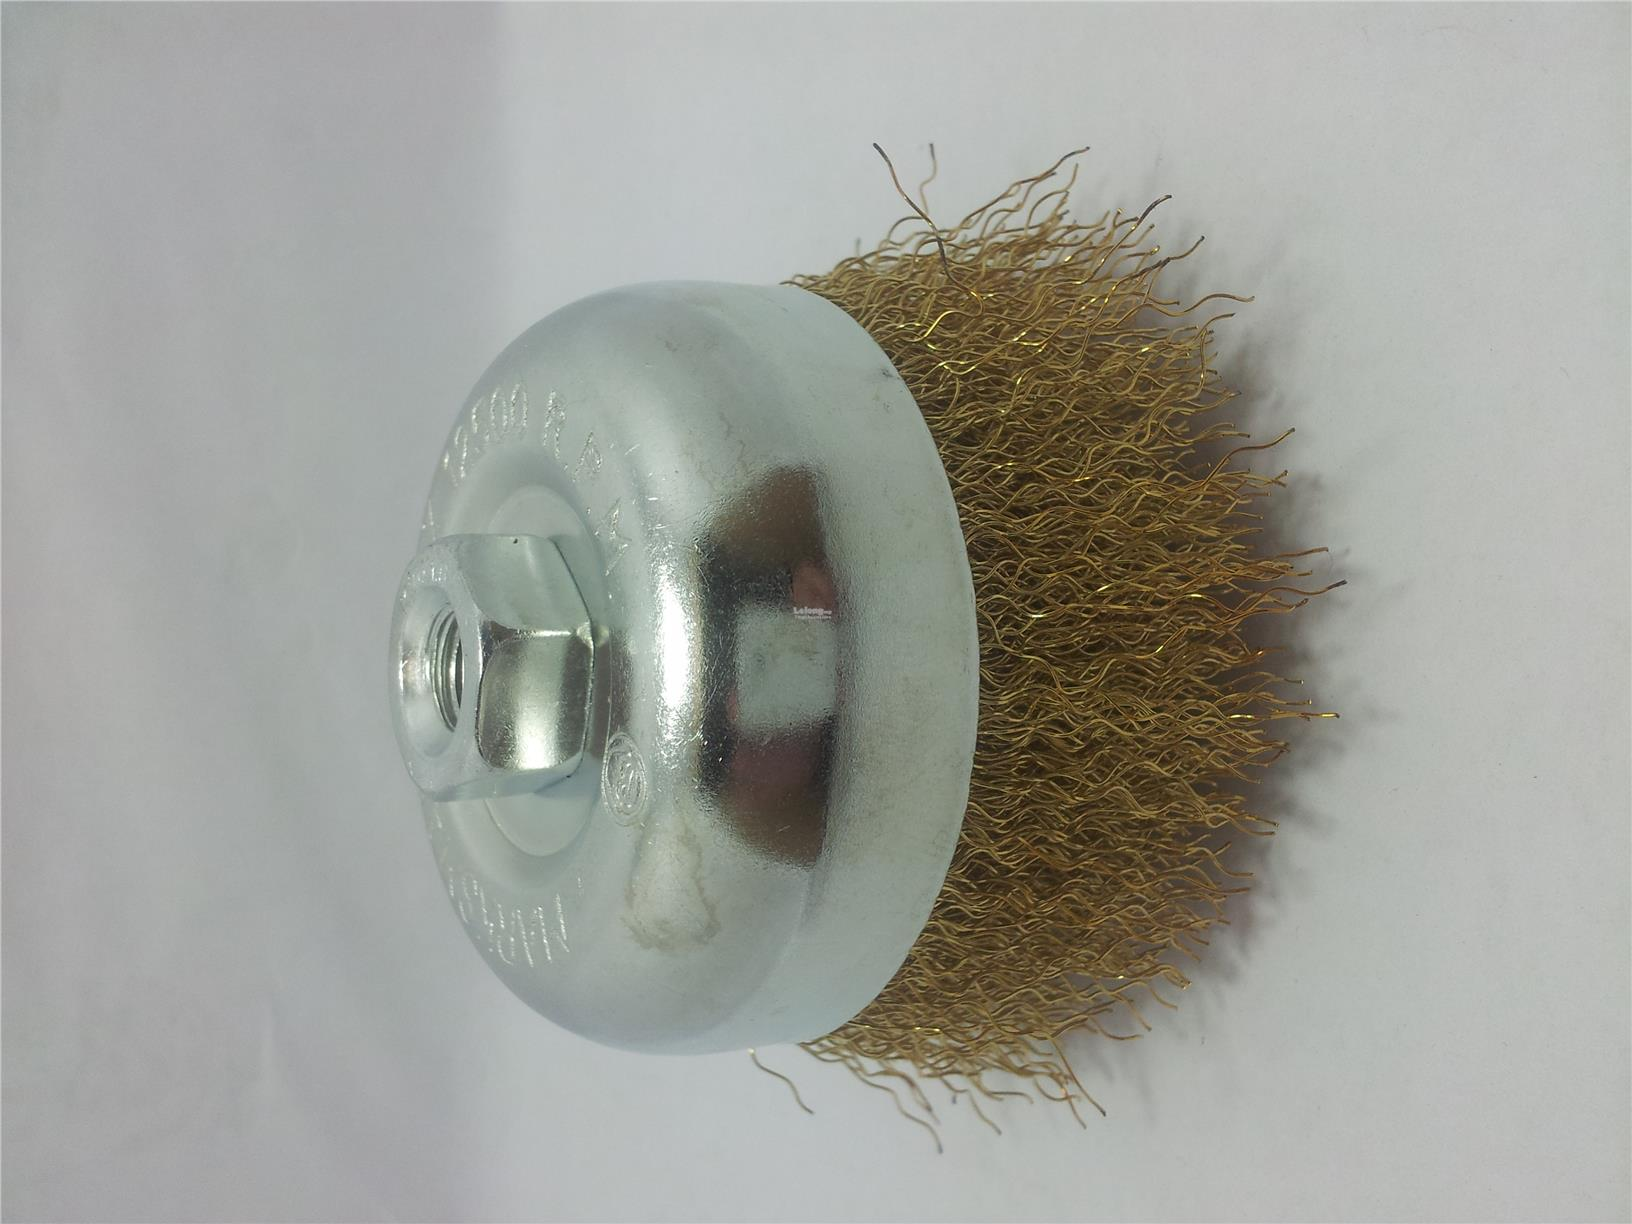 3' CUP BRUSH CRIMP WIRE M10 X1.5MM